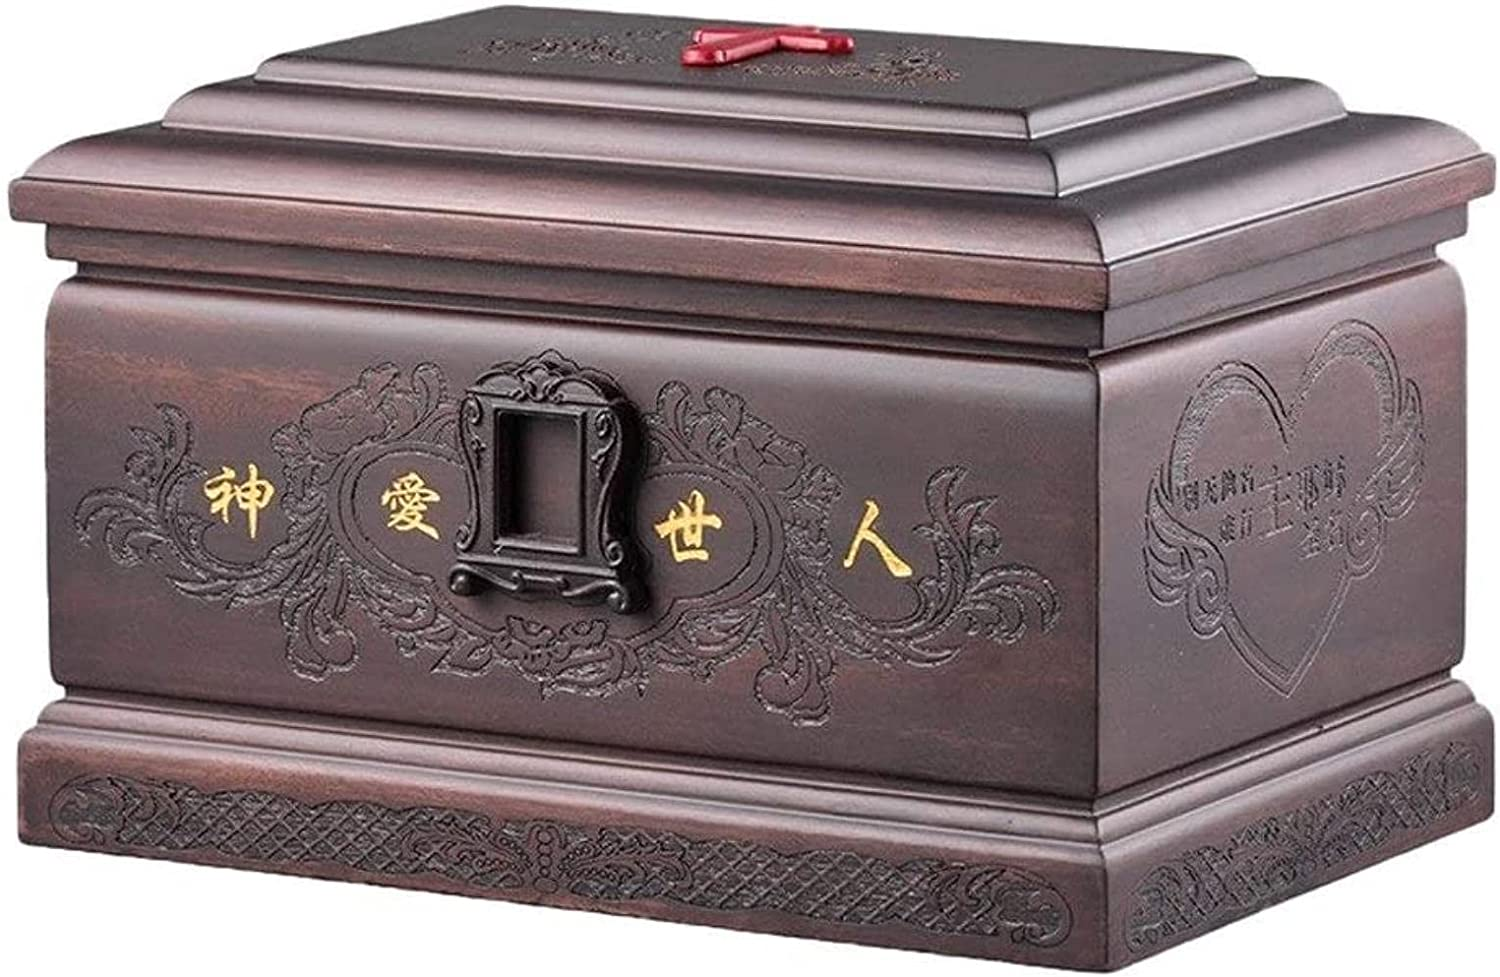 Sales XKUN Handmade Decorative Urns for Urn Wood Cremation gift f Ashes